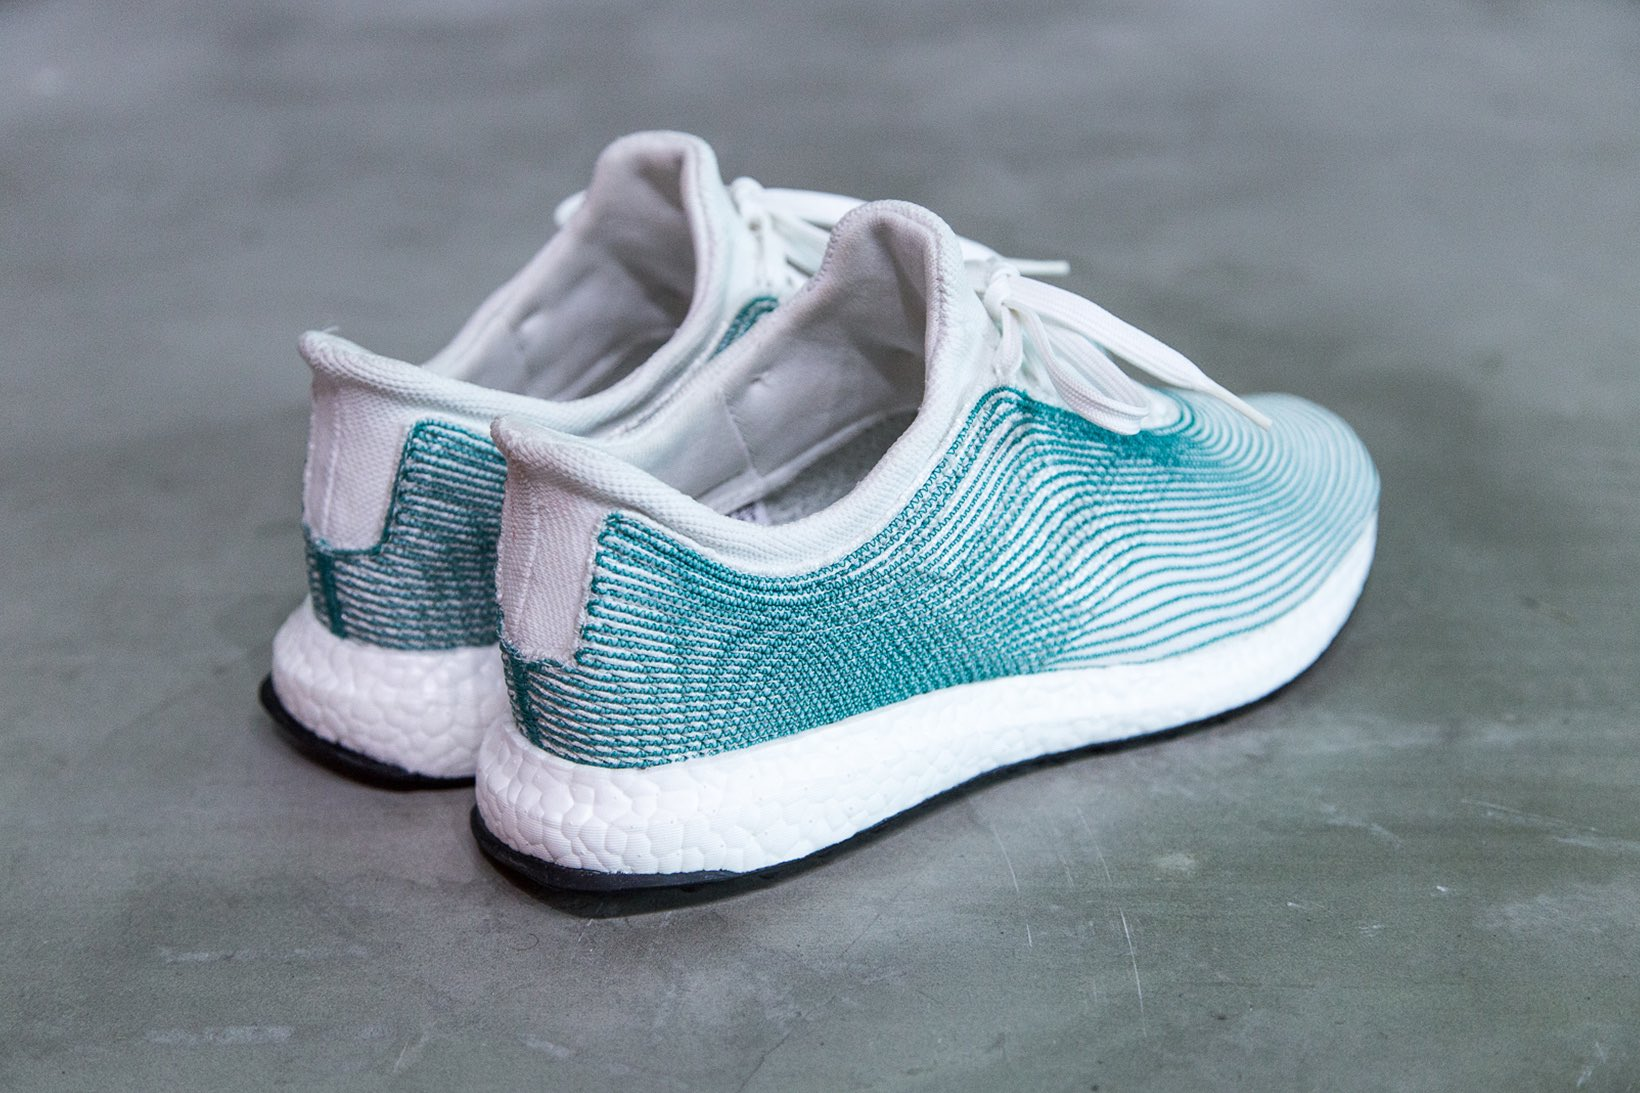 closer-look-at-adidas-x-parley-collaboration-world-oceans-day-4